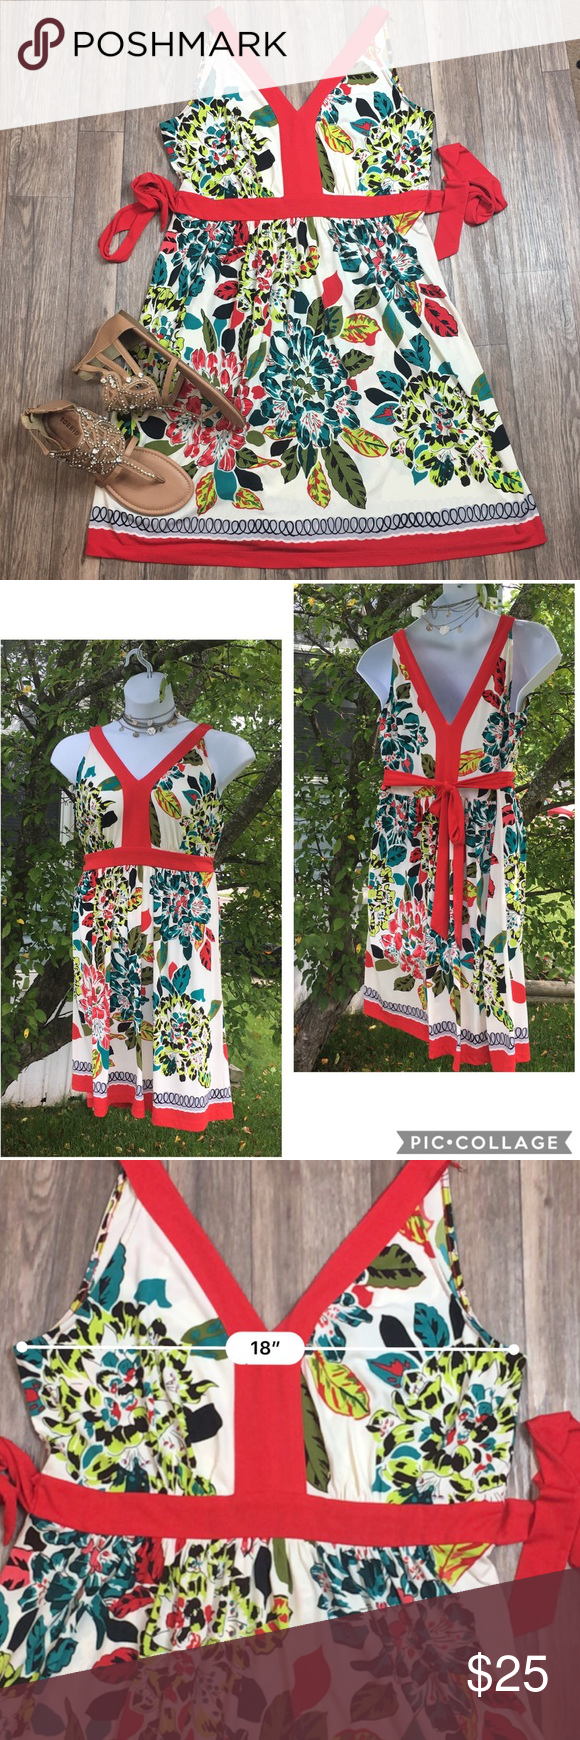 Ritz Ali Red Floral Summer Dress Size 12 Red Floral Dress Summer Floral Dress Summer Summer Dresses [ 1740 x 580 Pixel ]